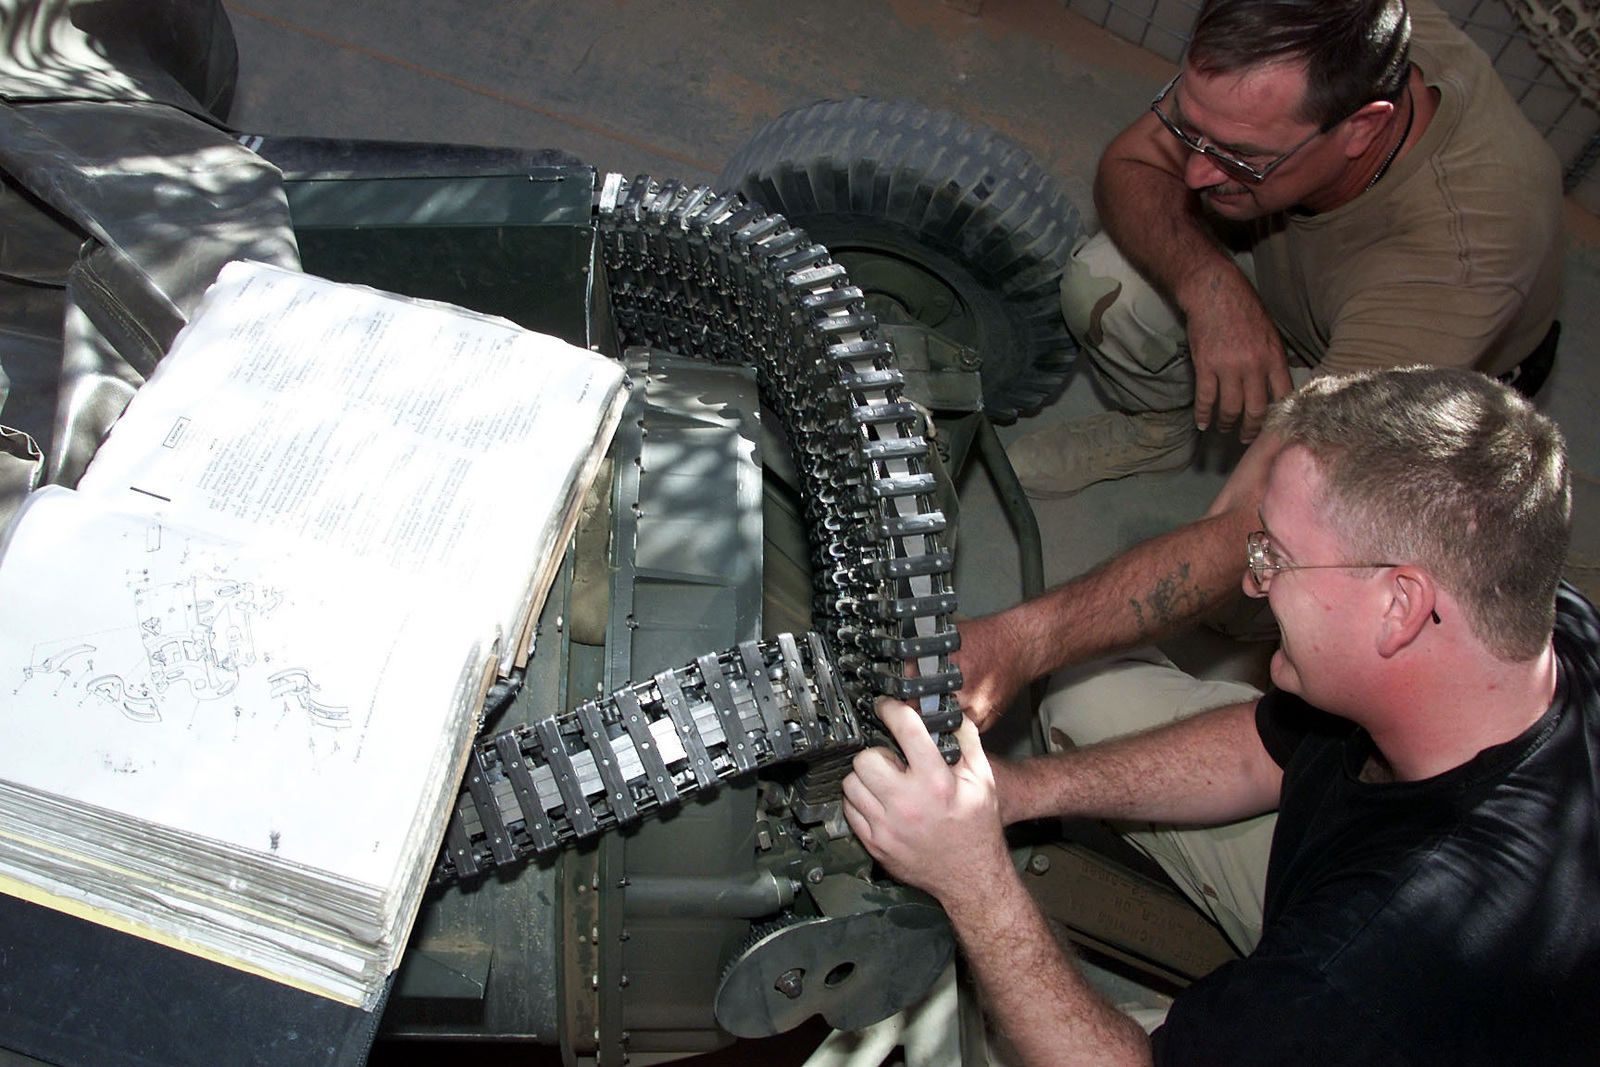 US Air Force MASTER Sergeant James Rice and US Air Force STAFF Sergeant Eric MacDonald, from the 363rd Expeditionary Maintenance Squadron (EMS), perform a preventative maintenance check on a Universal Ammunition Loading System at Prince Sultan Air Base, Saudi Arabia. The 363rd EMS is part of the coalition force here to support Operation SOUTHERN WATCH, a military effort to enforce the no-fly and no-drive zone in Southern Iraq